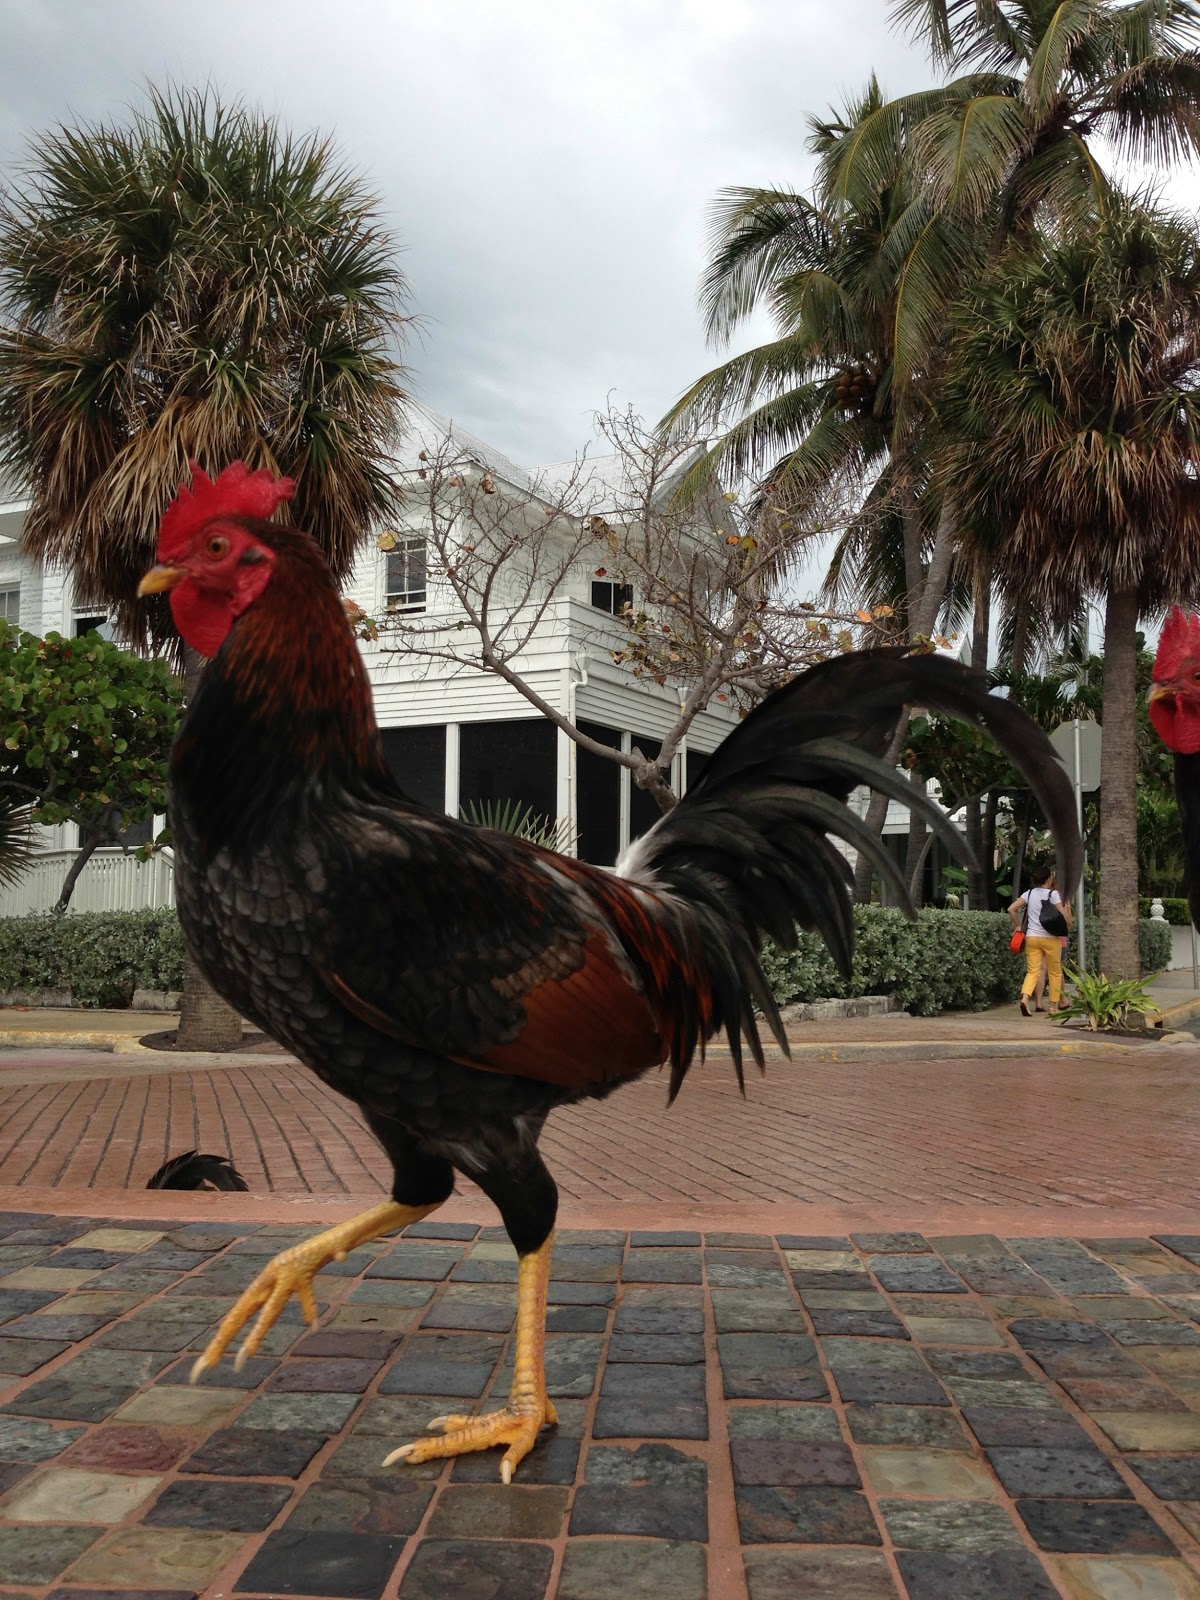 the time being, the chickens are left to range Key West. For a chicken ...